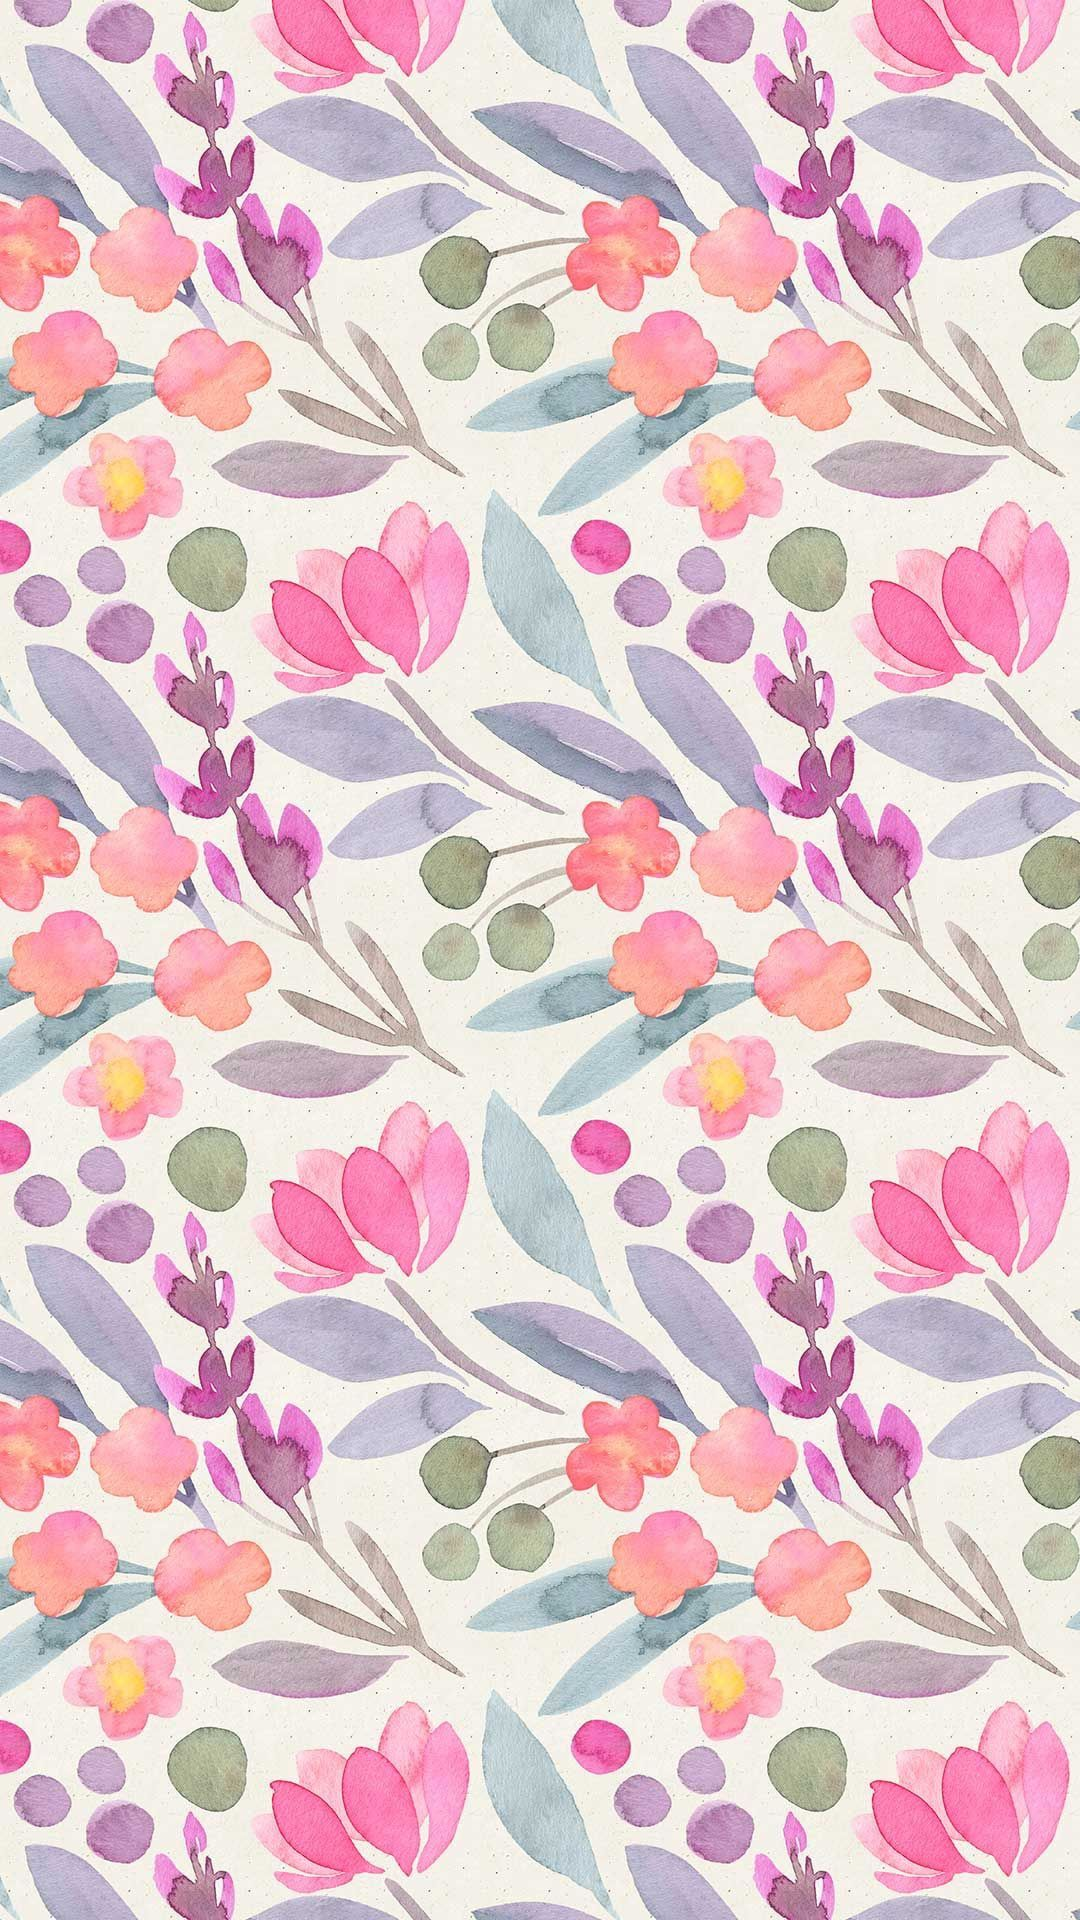 Delicate Floral Watercolour Pattern In Pinks Blues Purples